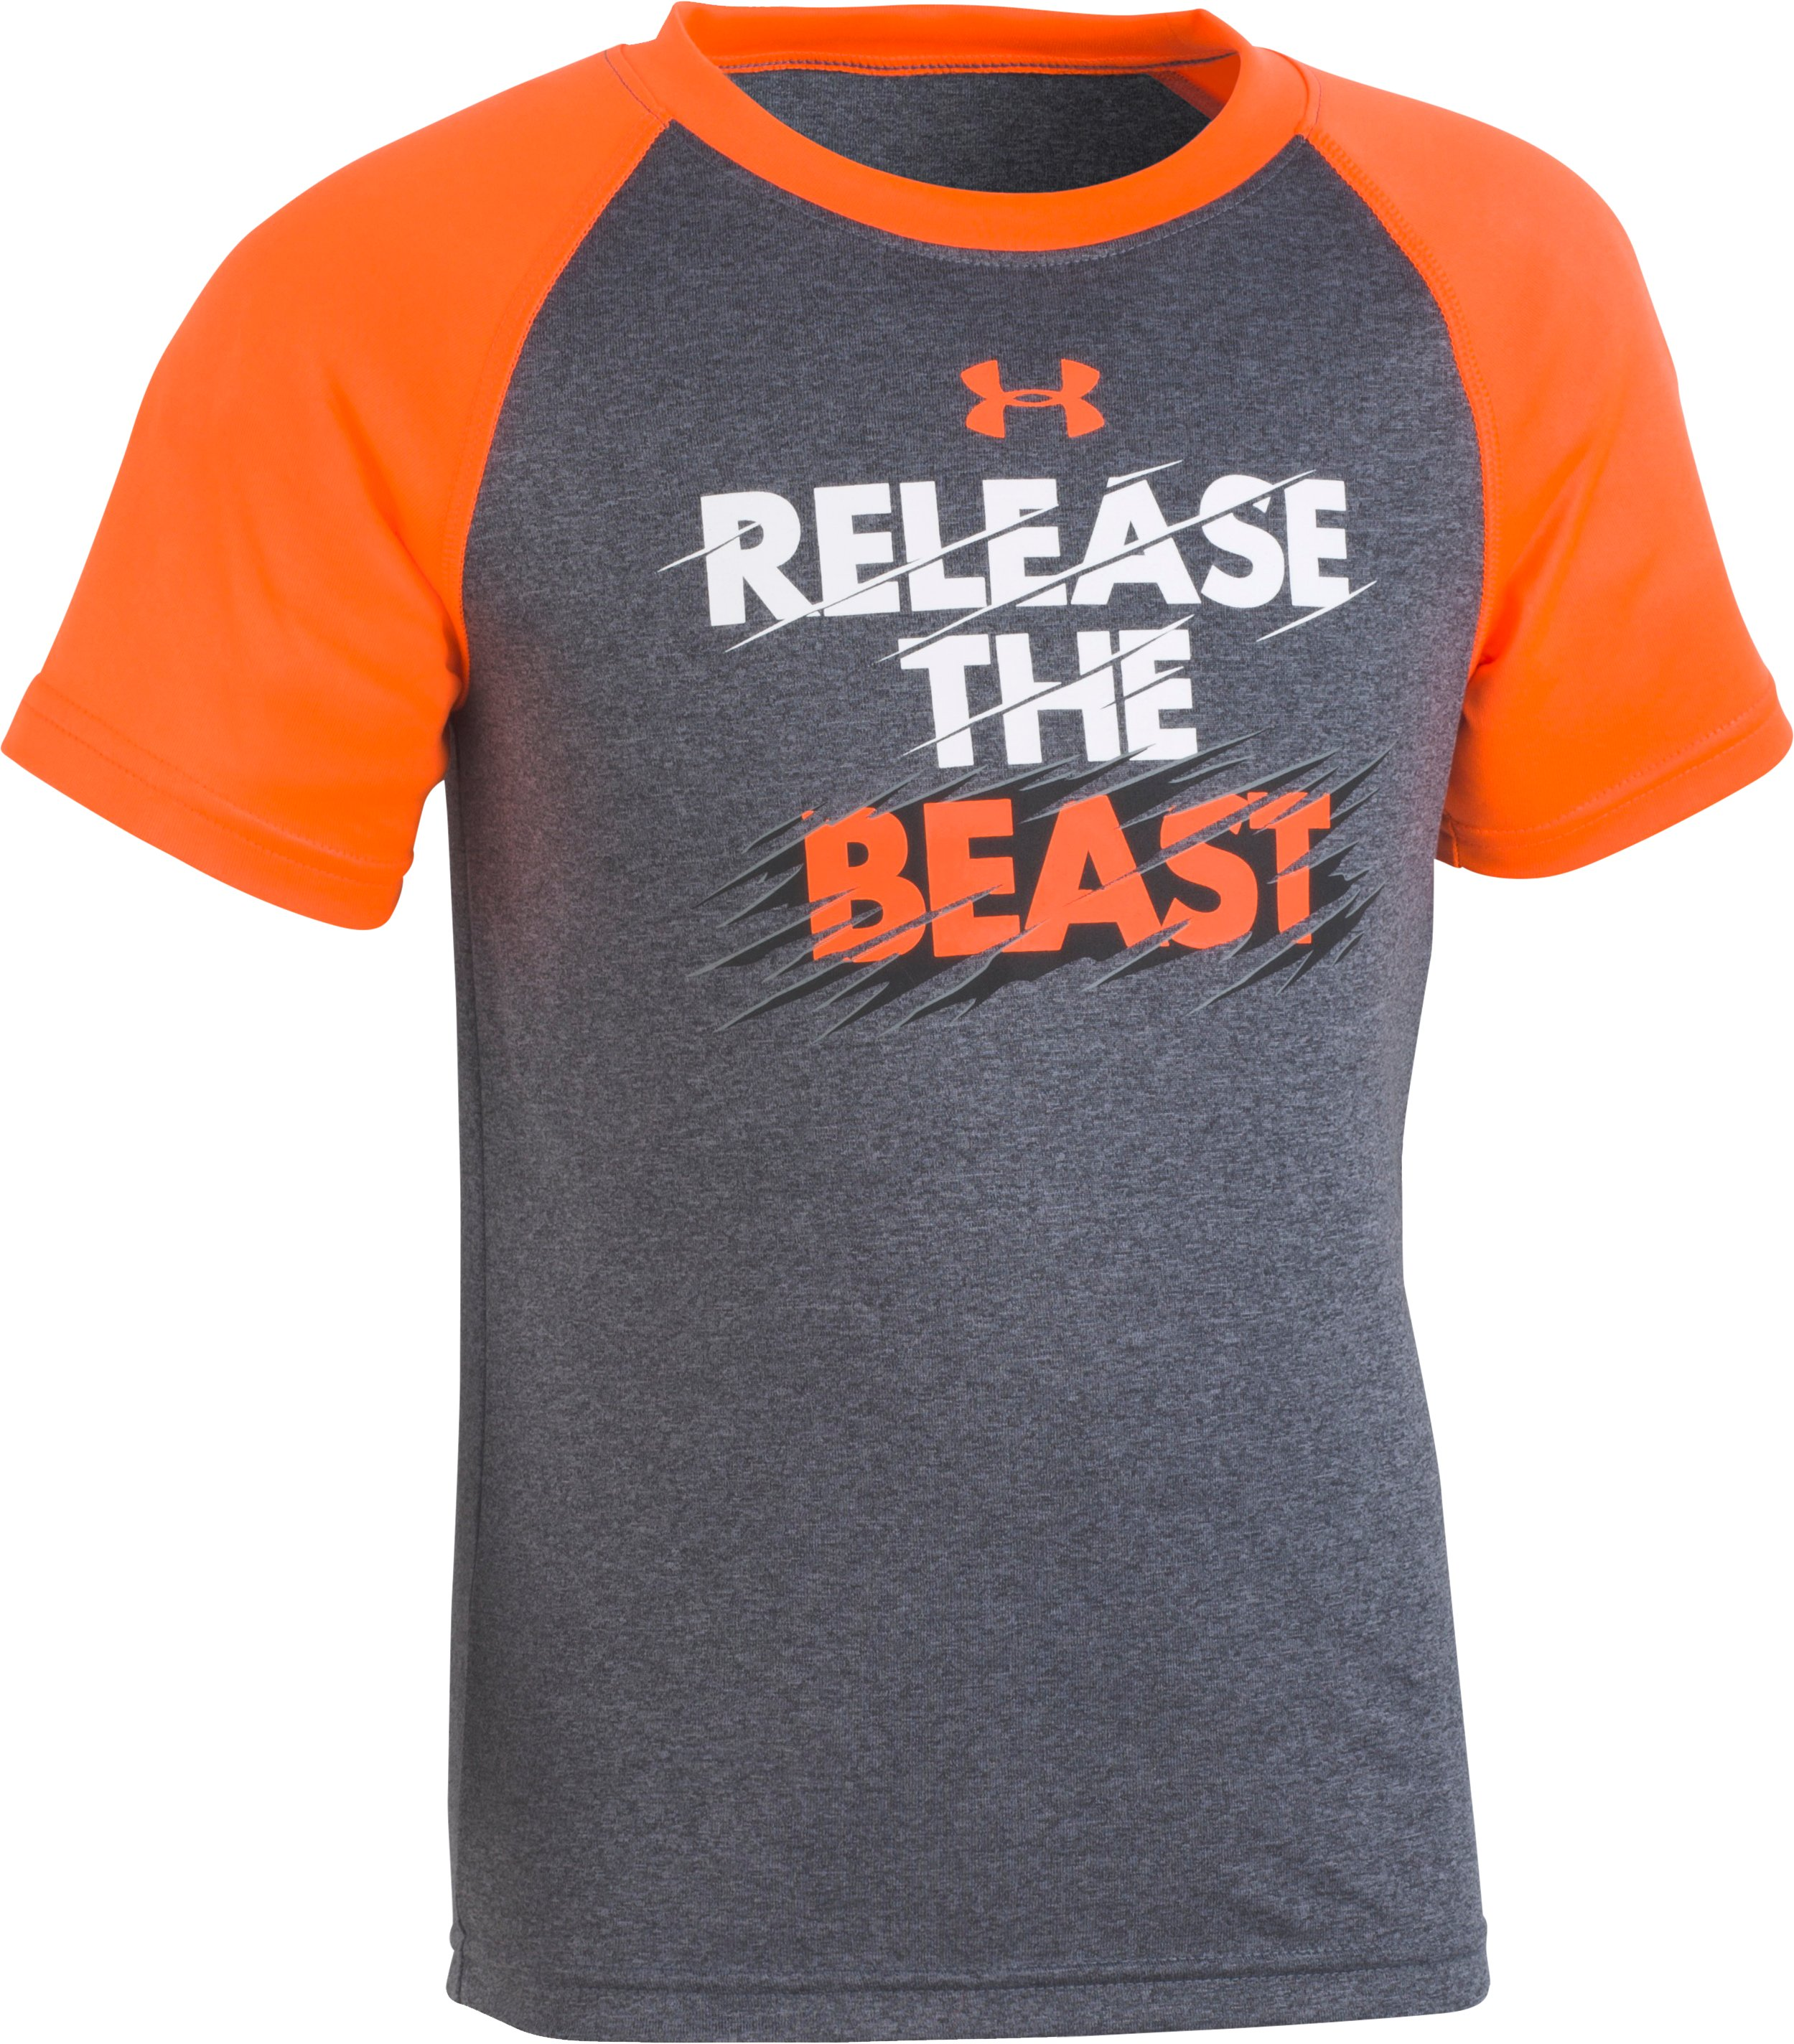 Boys' Toddler UA Release The Beast T-Shirt , Charcoal Medium Heather, zoomed